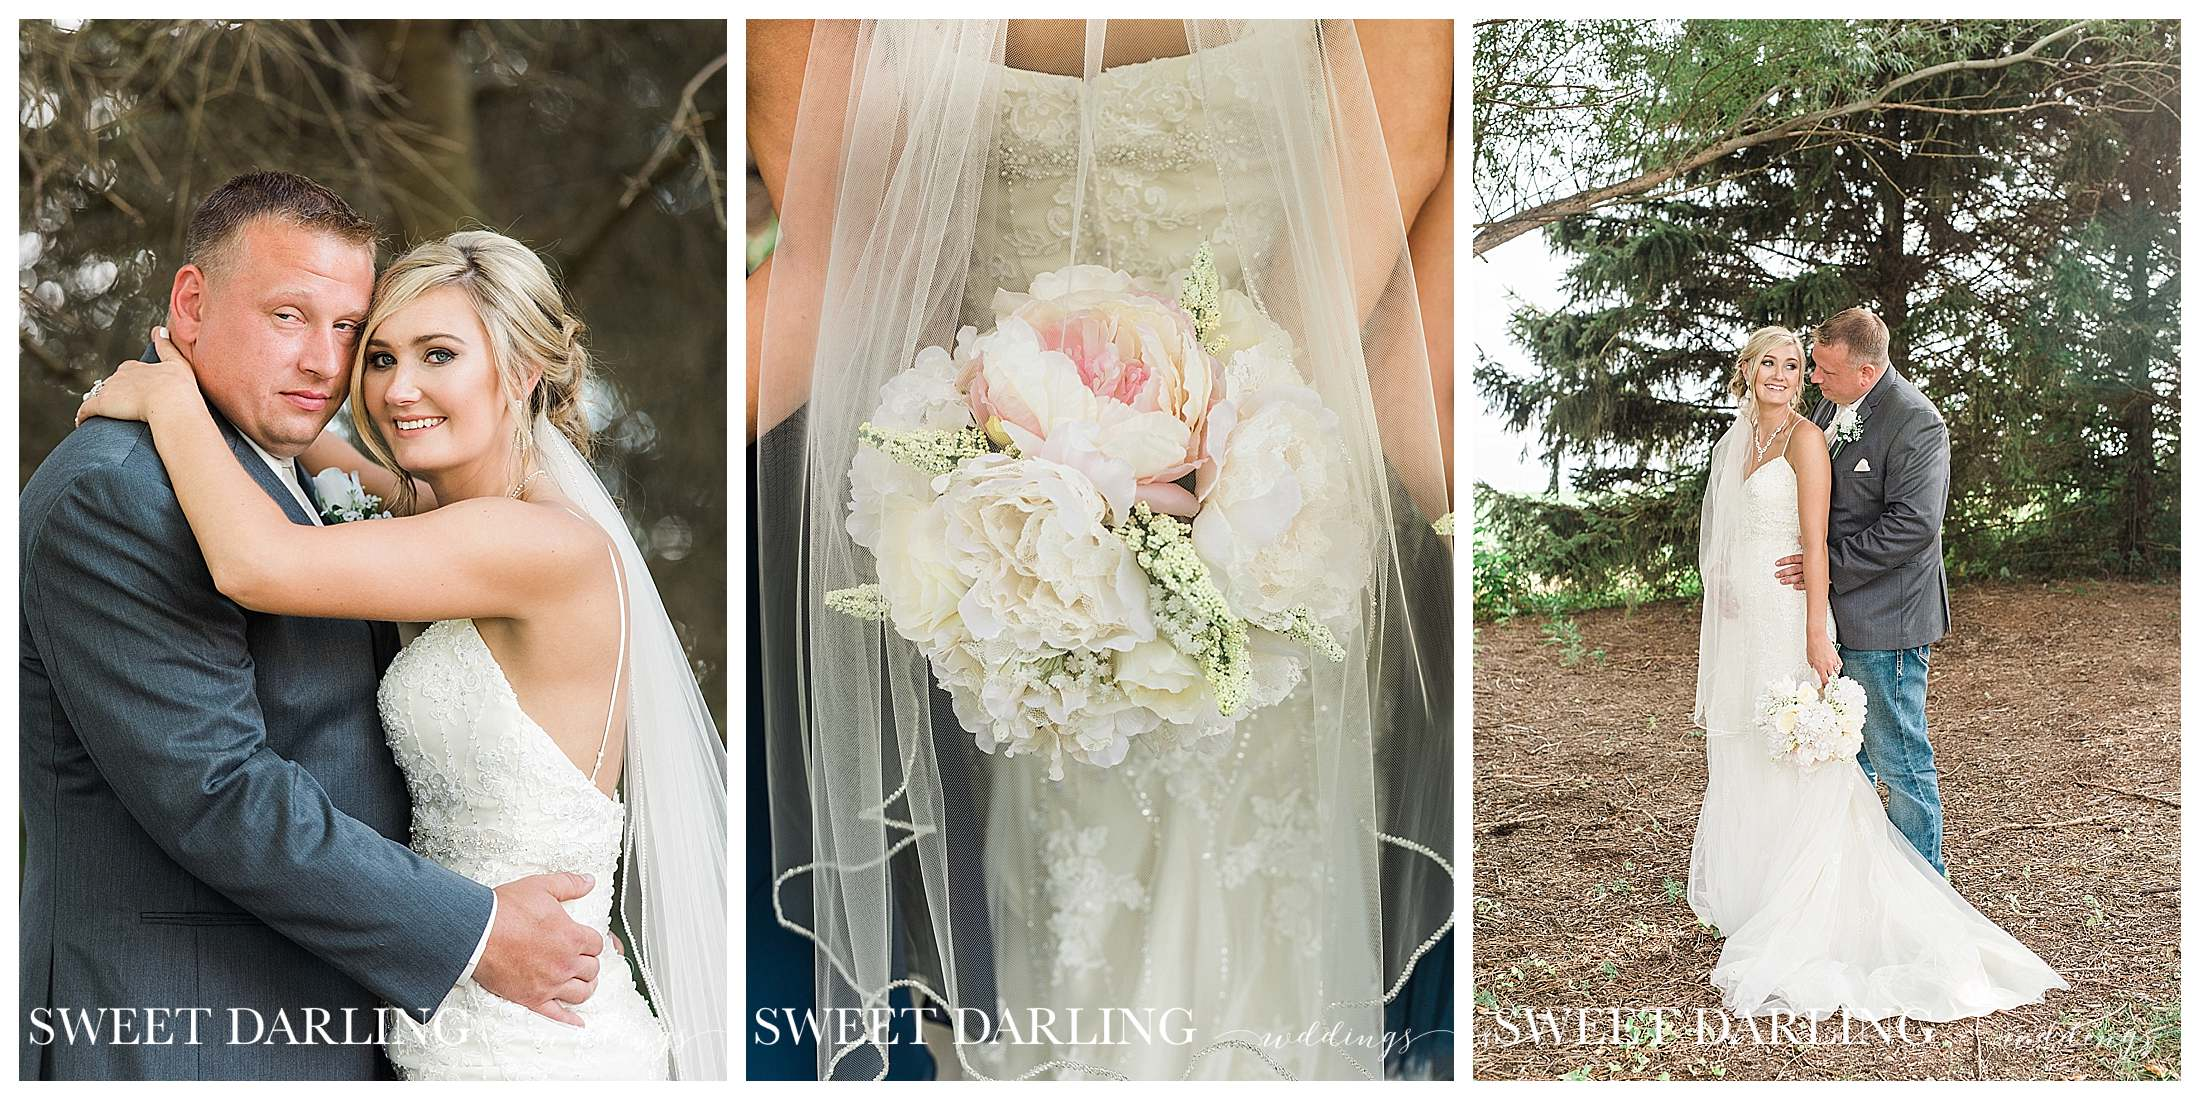 champaign-county-illinois-Pear-Tree-Estate-sweet-darling-weddings-photography_1535.jpg